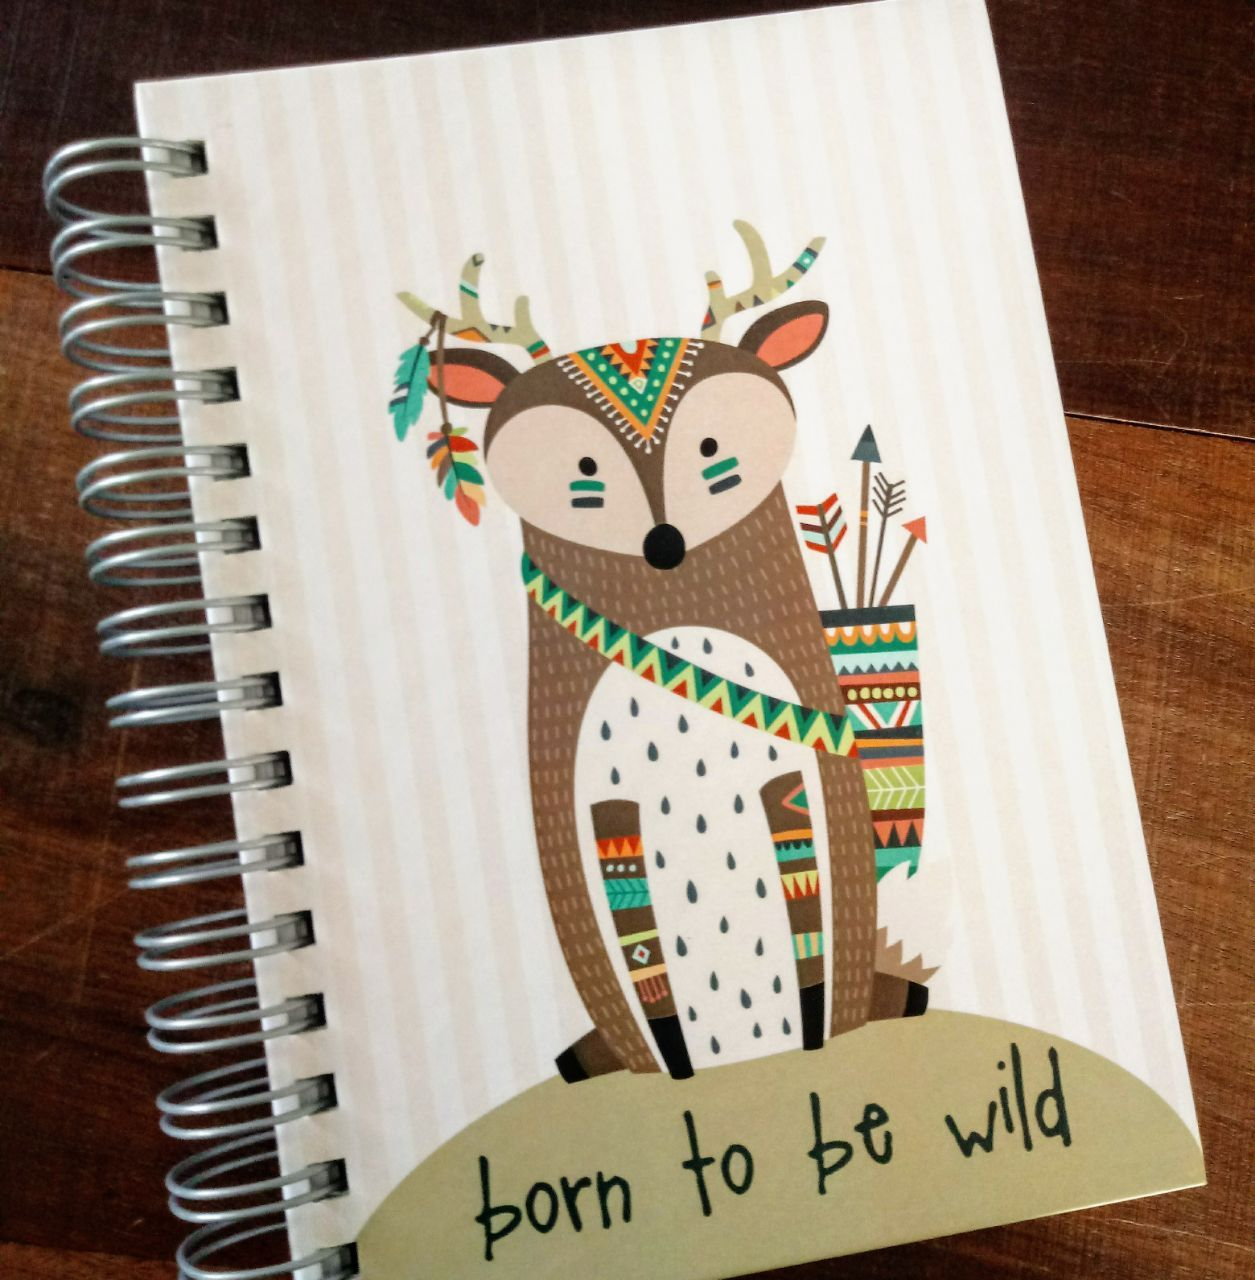 Agenda Born to be wild - Raposa